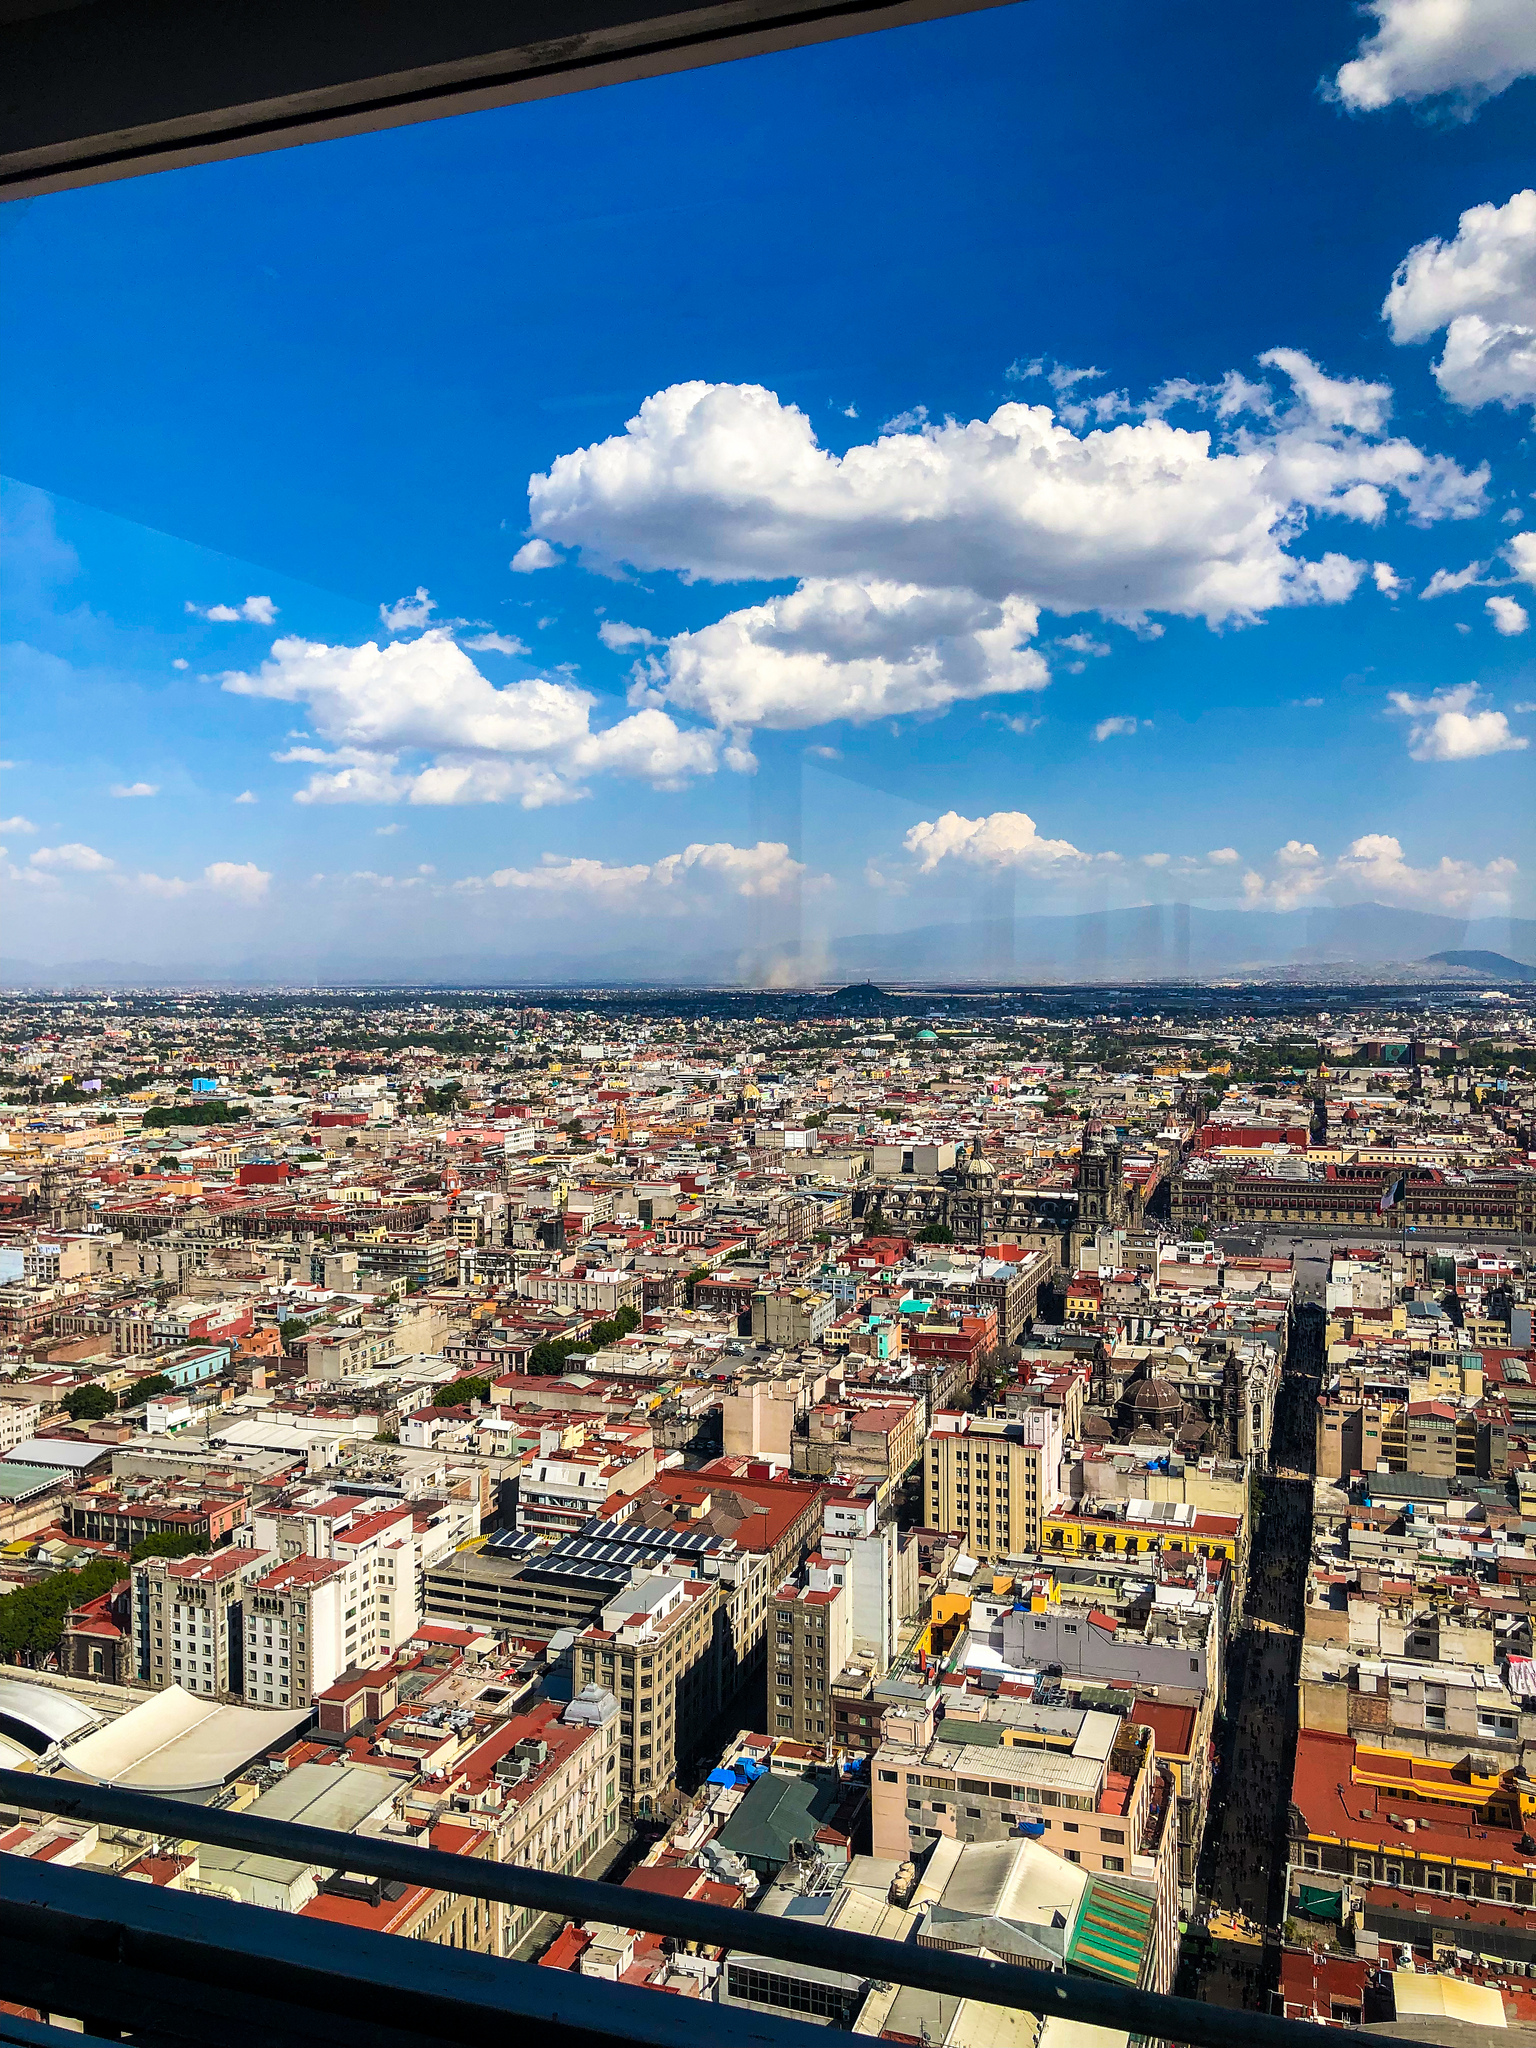 The Ultimate 7-Day Itinerary to experience all the magic of Mexico City